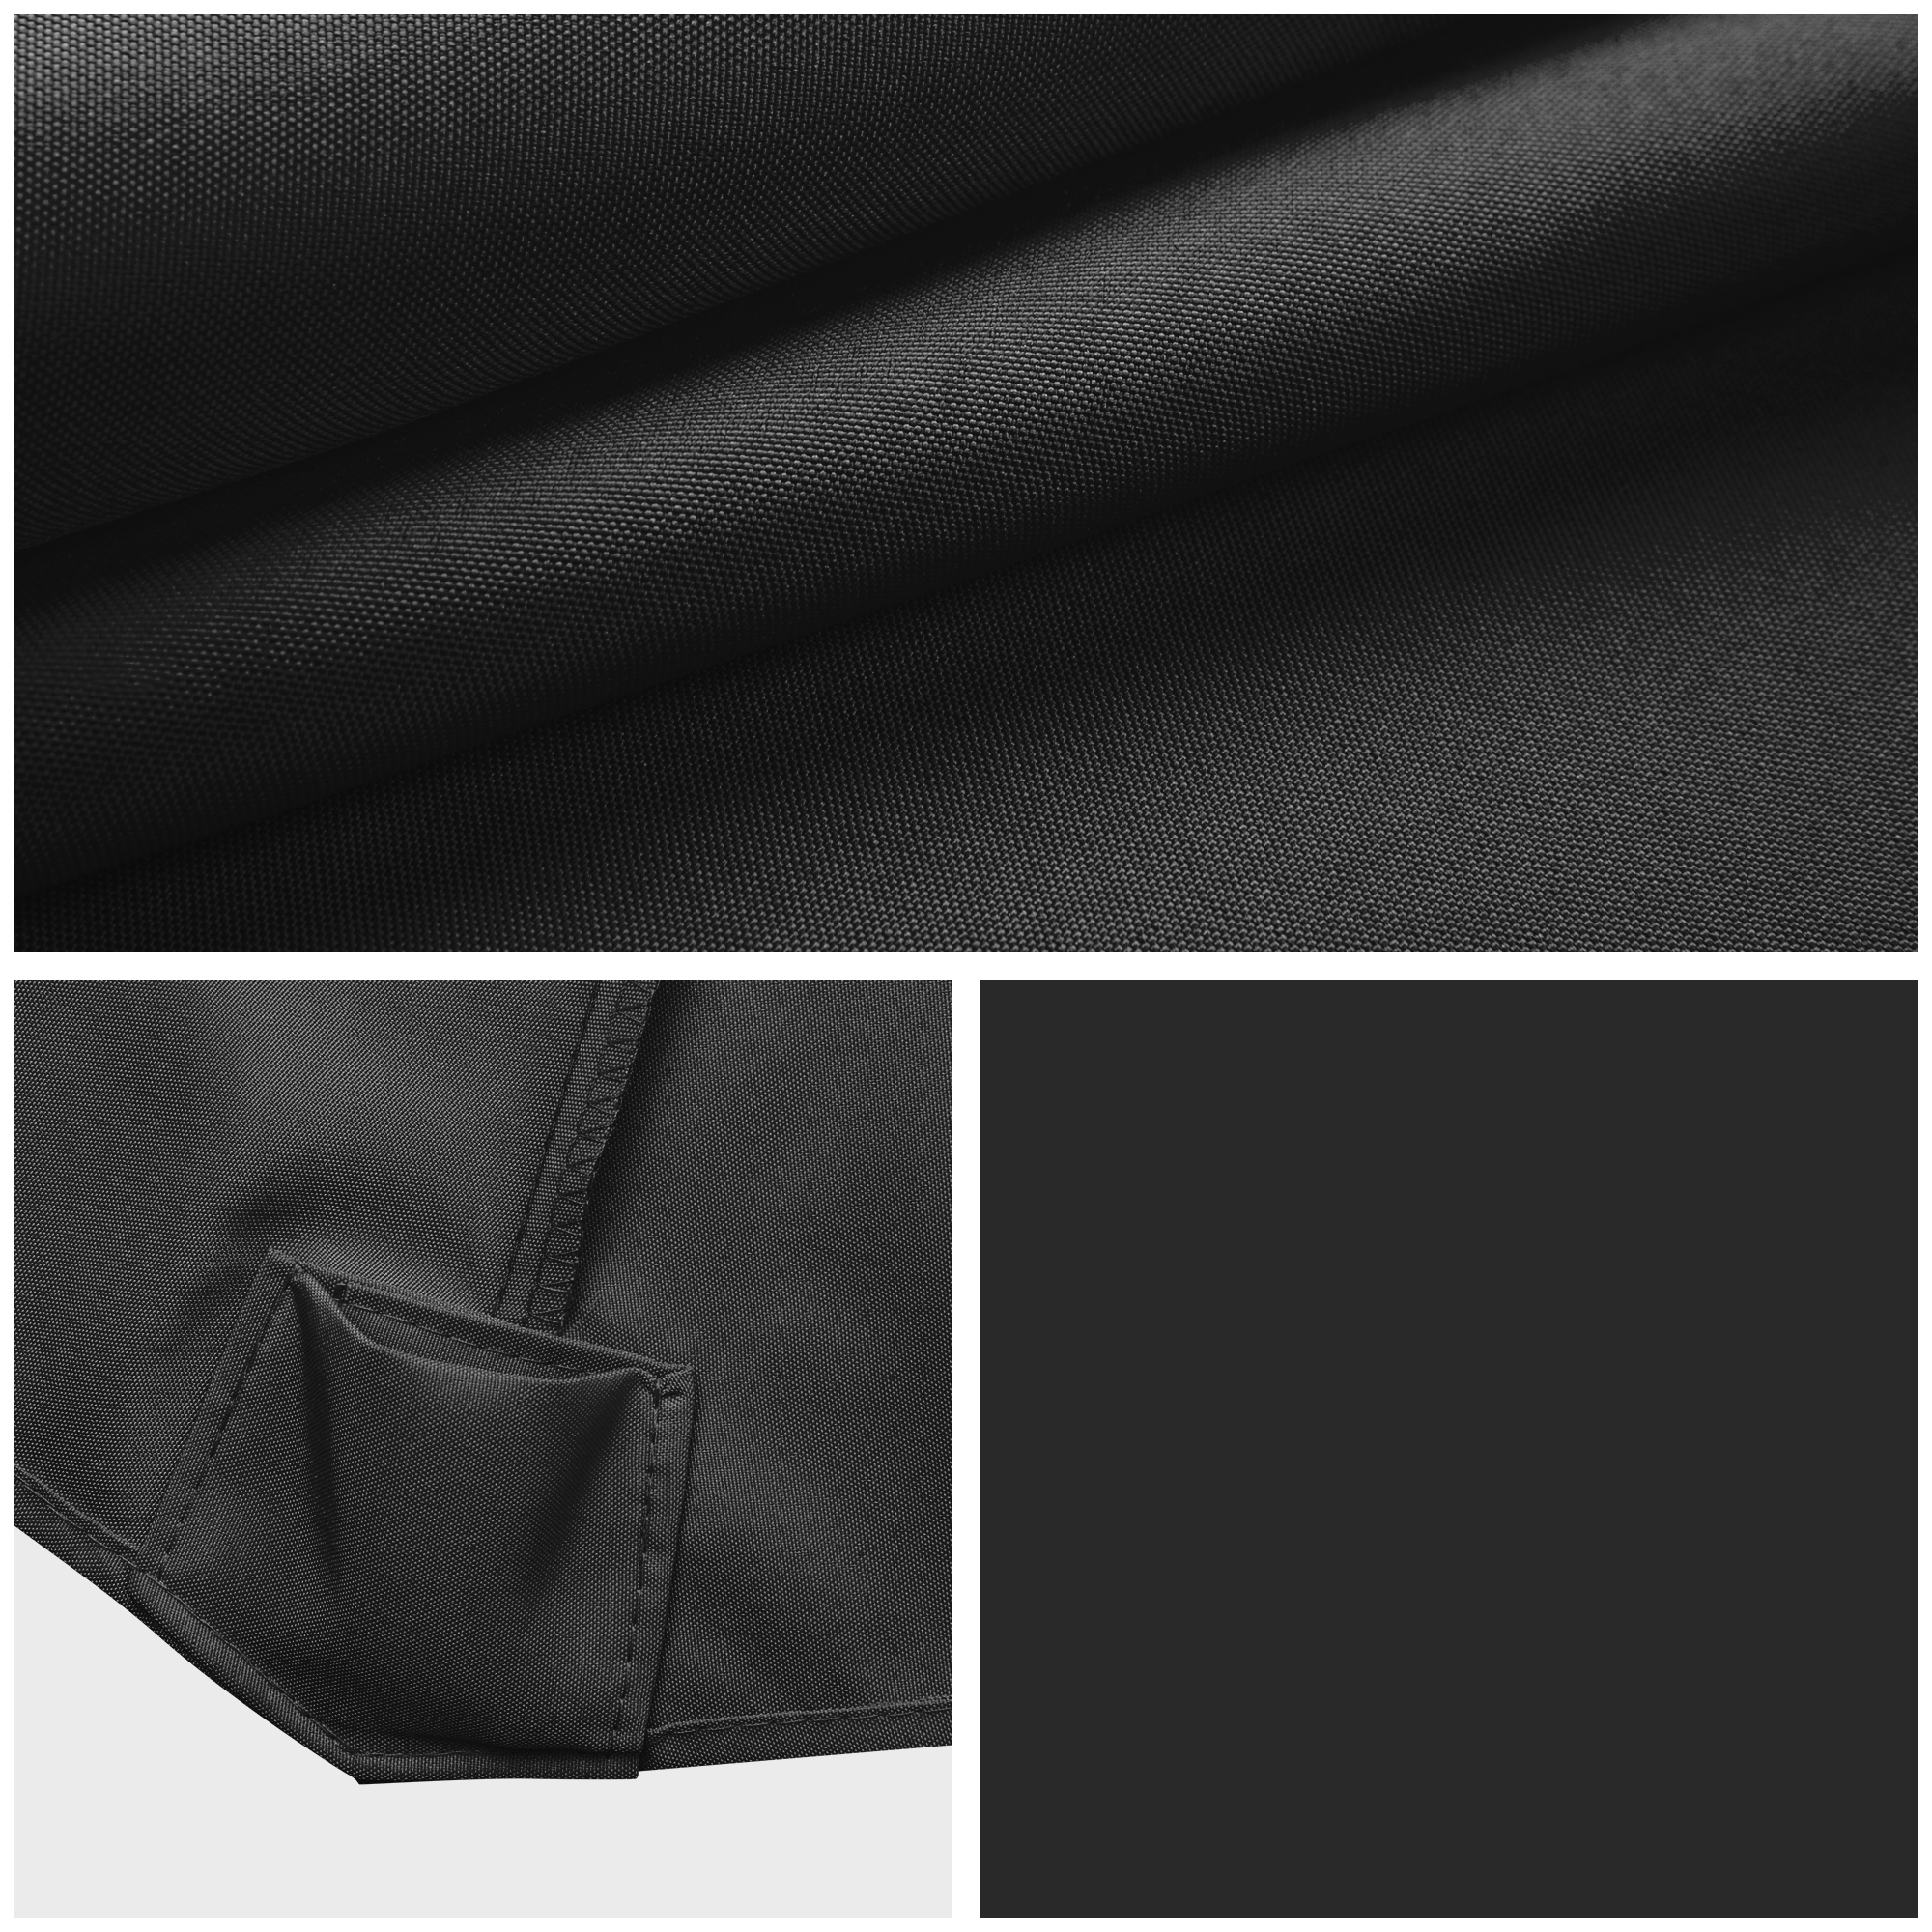 thumbnail 141 - 8'/9'/10'/13' Umbrella Replacement Canopy 8 Rib Outdoor Patio Top Cover Only Opt